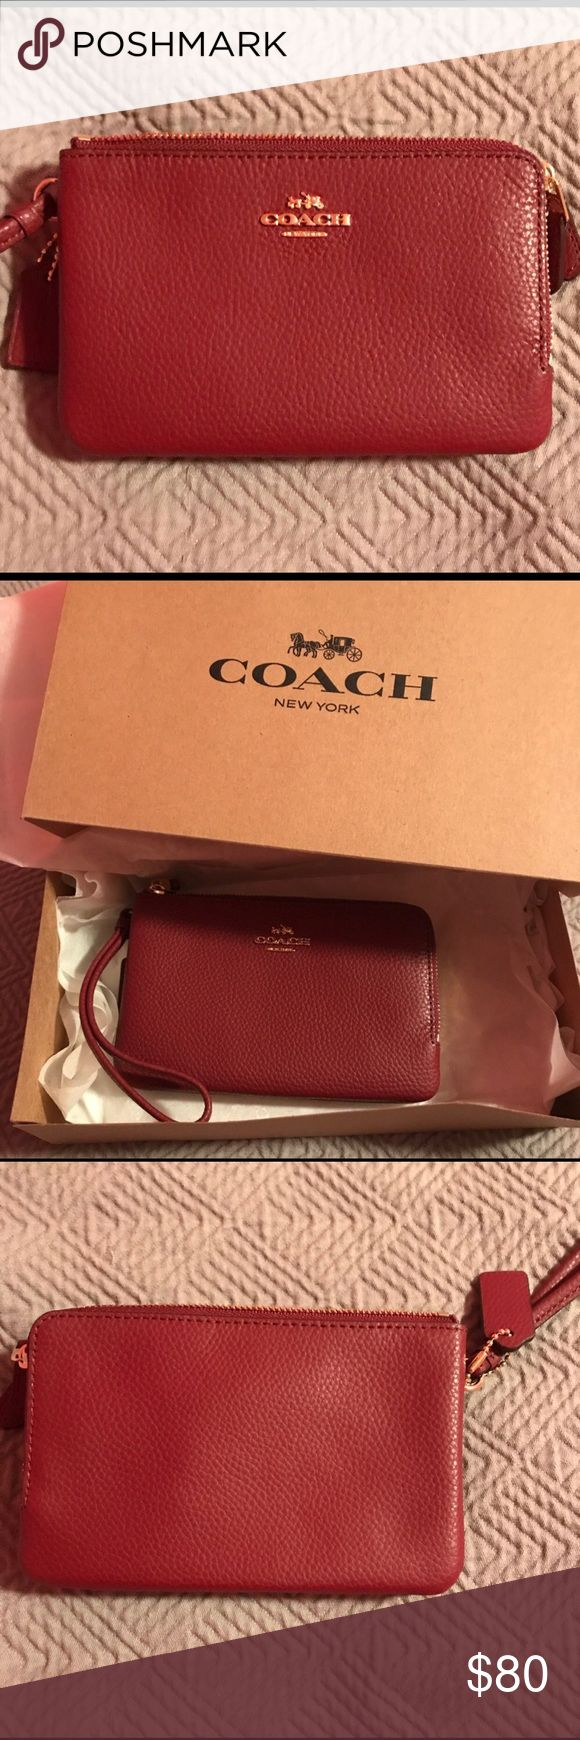 Coach Double Zip Wristlet w/ Gift Receipt and Box Coach Double Zip Wristlet Wine Red with Gold Tone logo.  One compartment features two card slots and an open roomy compartment, second compartment can hold lipstick, changes and other daily essentials.  Price Firm!  Comes with Coach gift receipt, gift box and tissue paper. Coach Bags Clutches & Wristlets